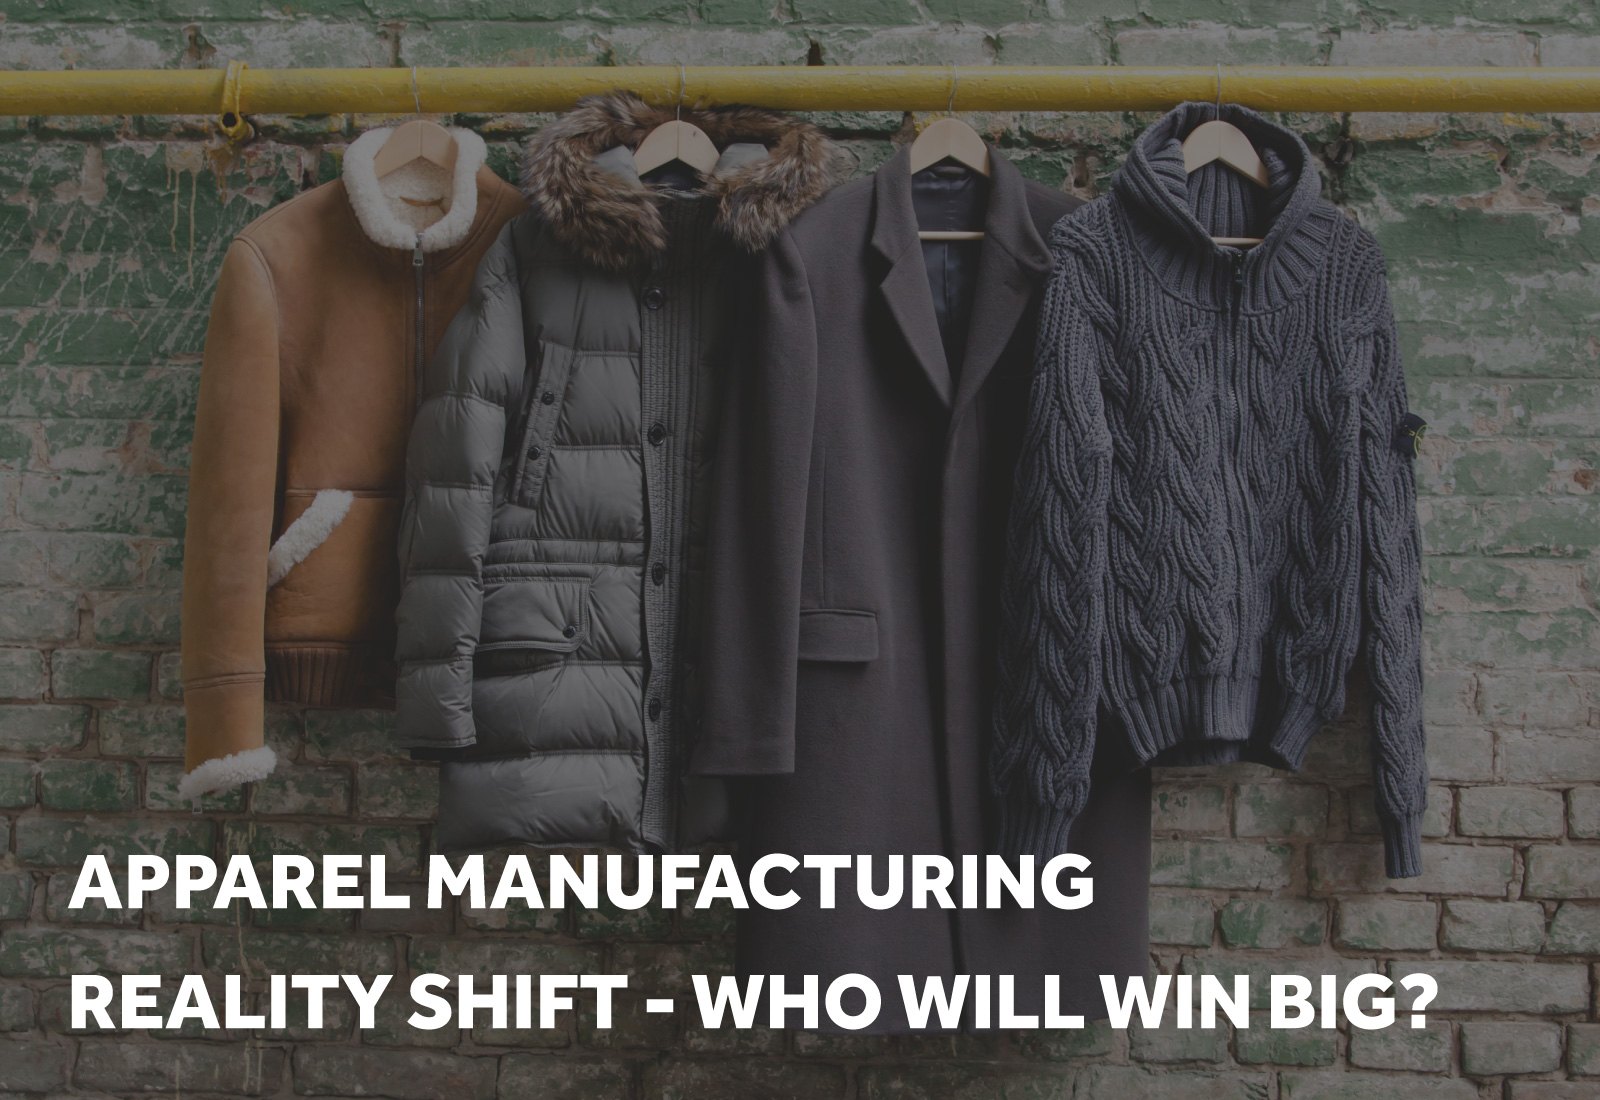 The Apparel Manufacturing Reality Shift - How Certain Brands